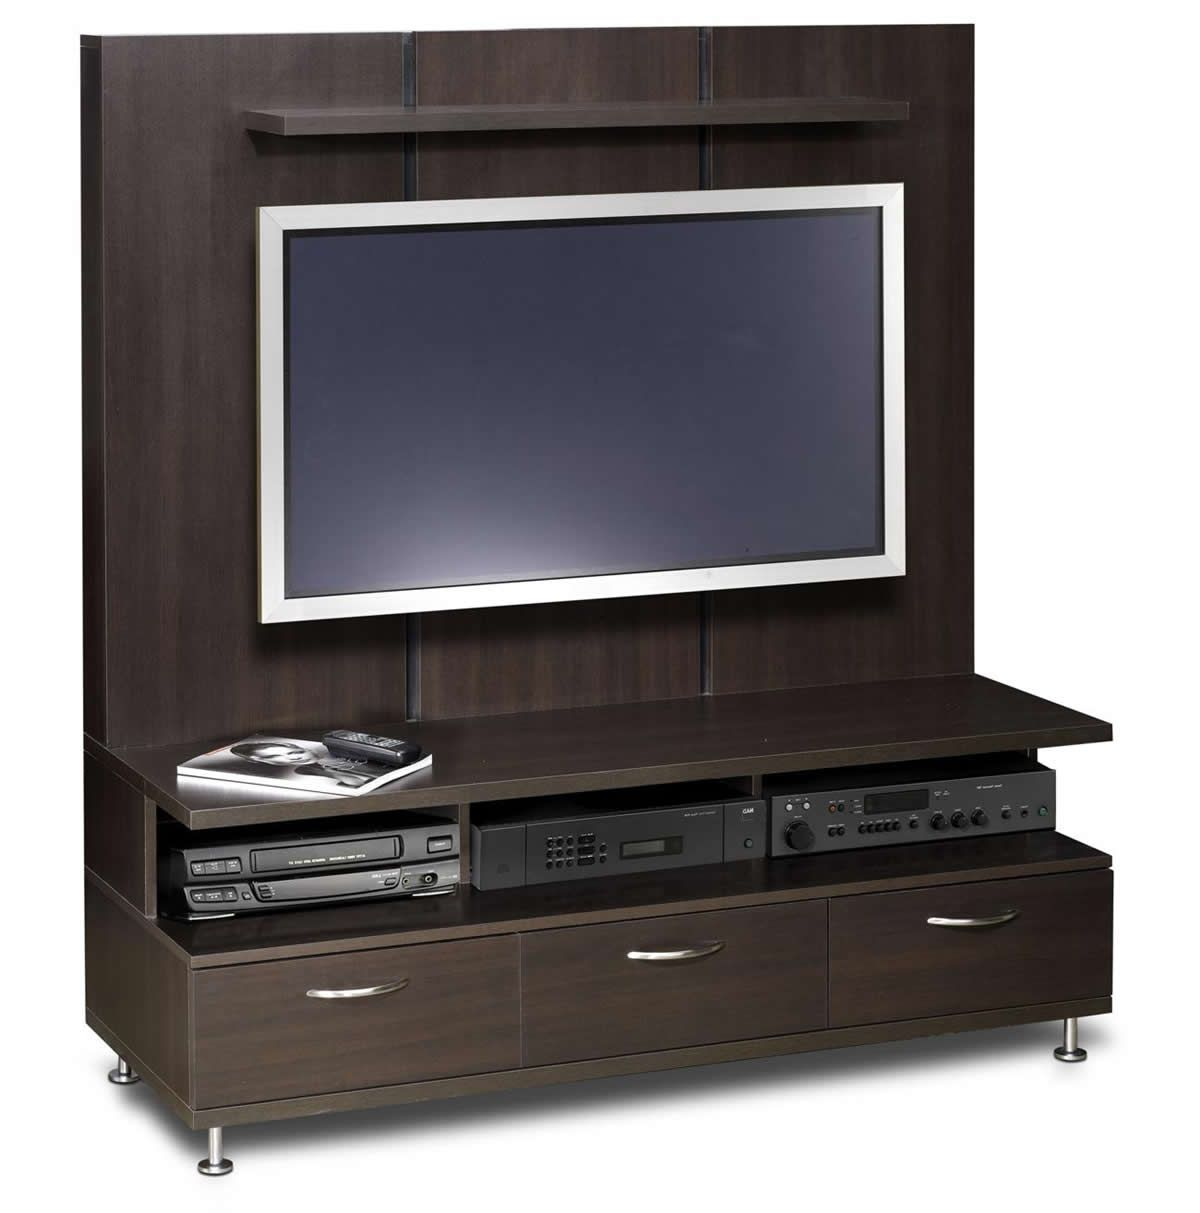 dark painted wood plasma tv stand interior furniture with 3 shelves and storage drawers